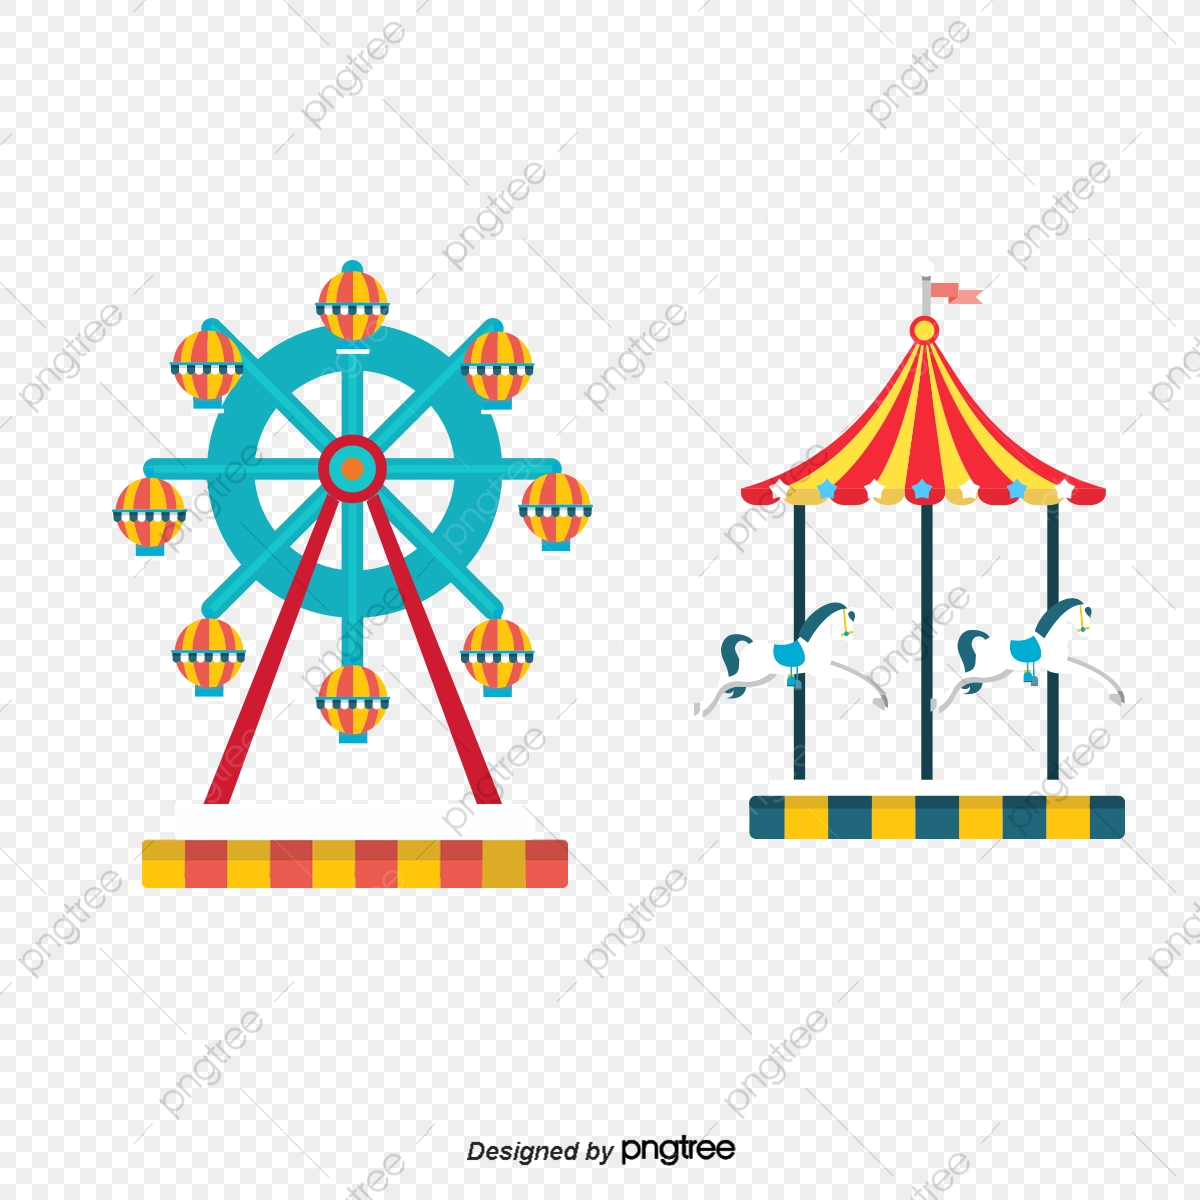 Vector Cartoon Amusement Park Ferris Wheel Carousel Cartoon Amusement Park Cartoon Ferris Png Transparent Clipart Image And Psd File For Free Download